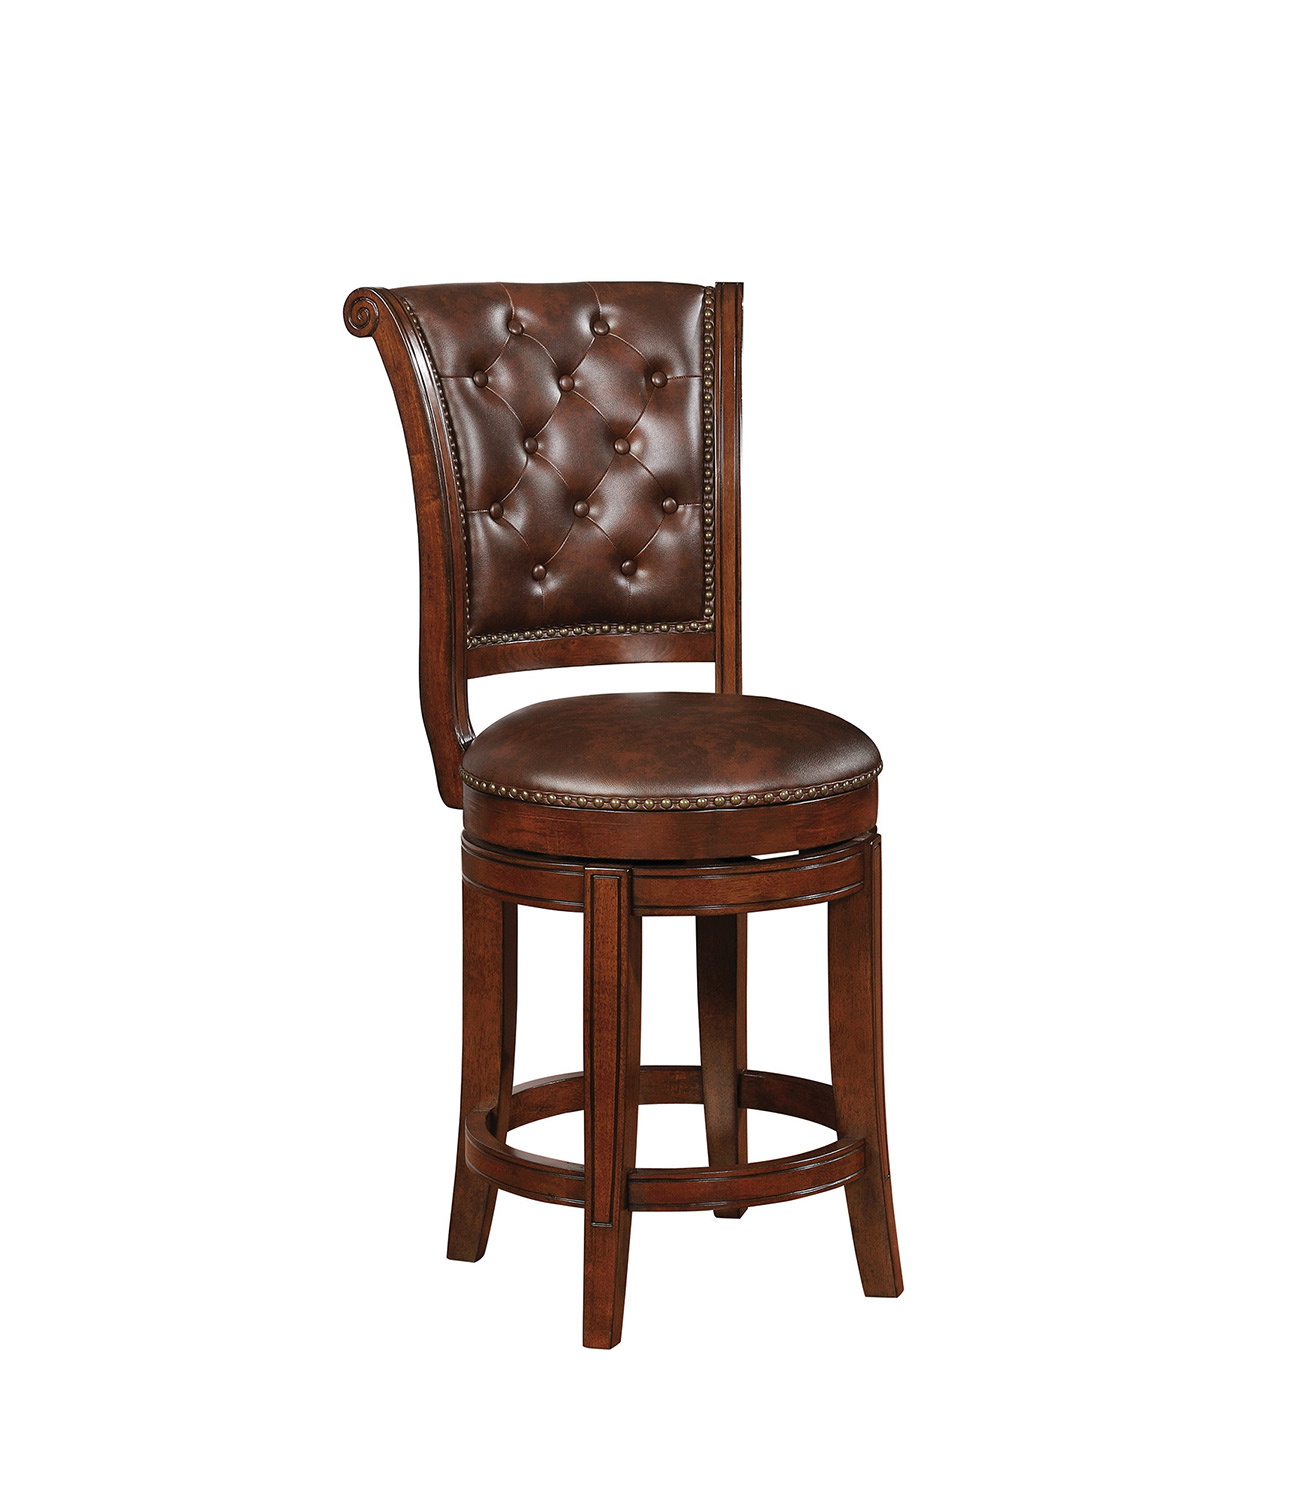 Coaster 102935 Bar Stool - Warm Brown